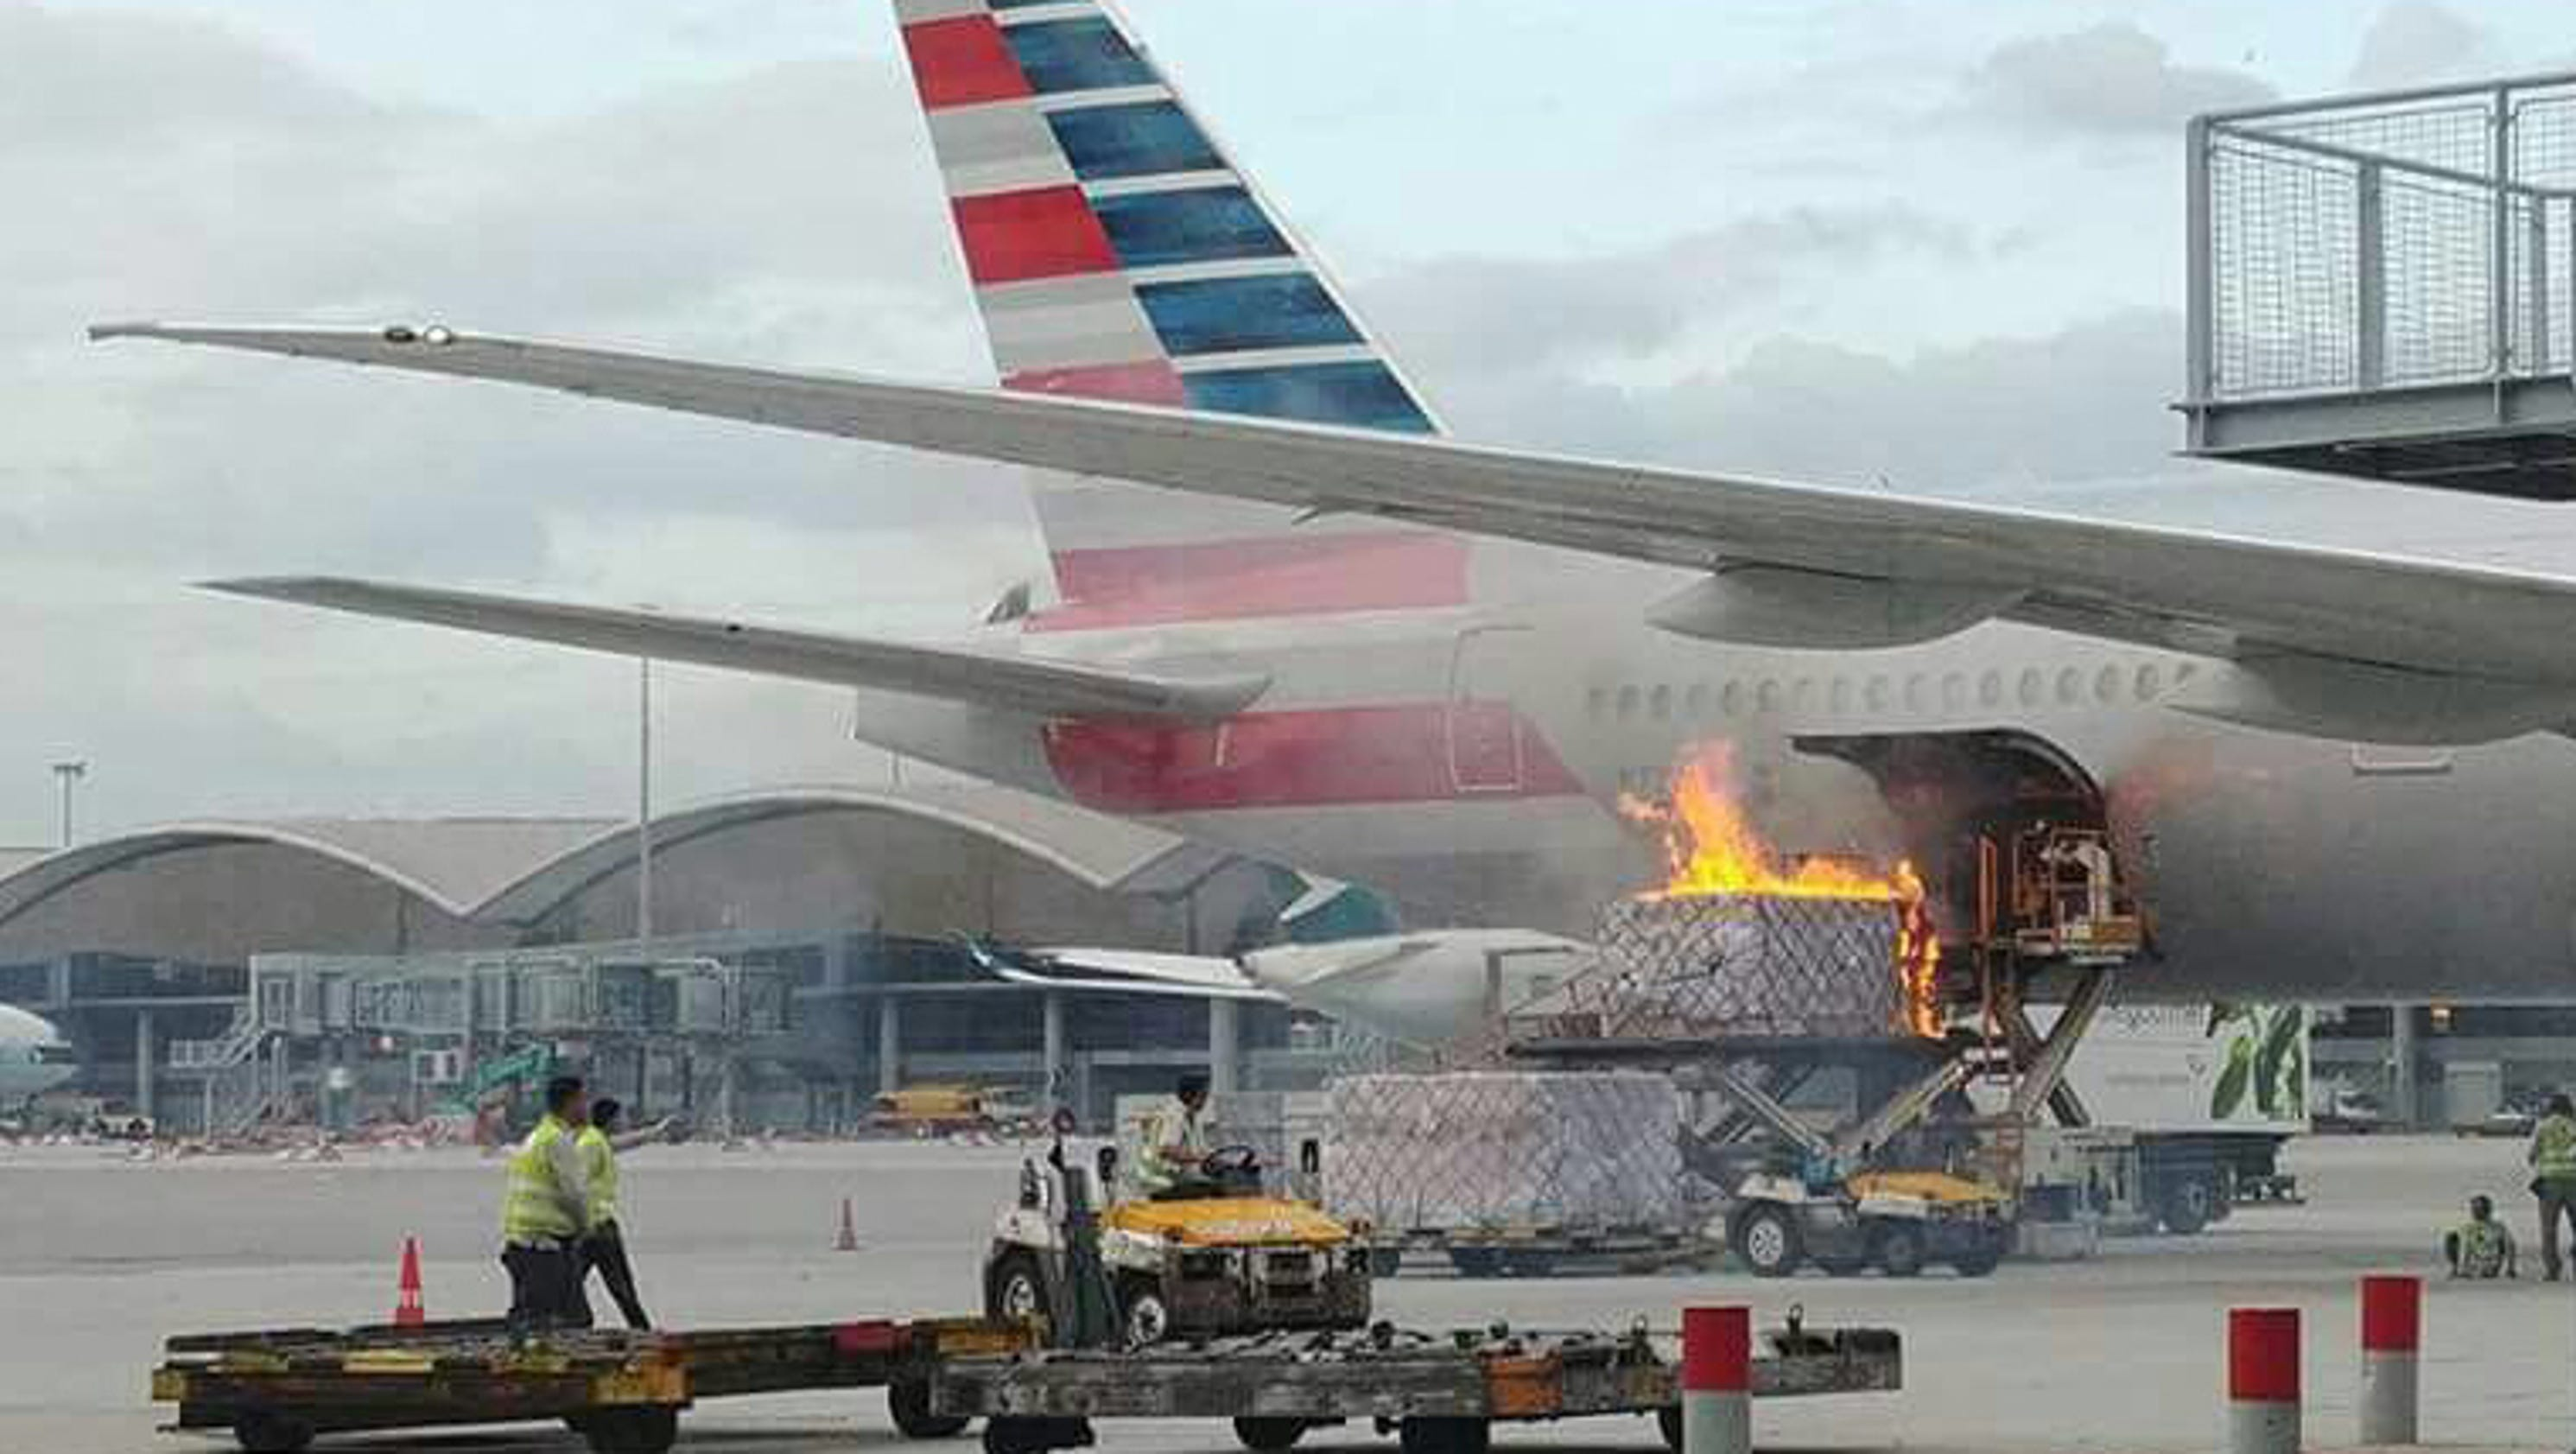 Cargo Fire Creates Dramatic Scene At Hong Kong Airport